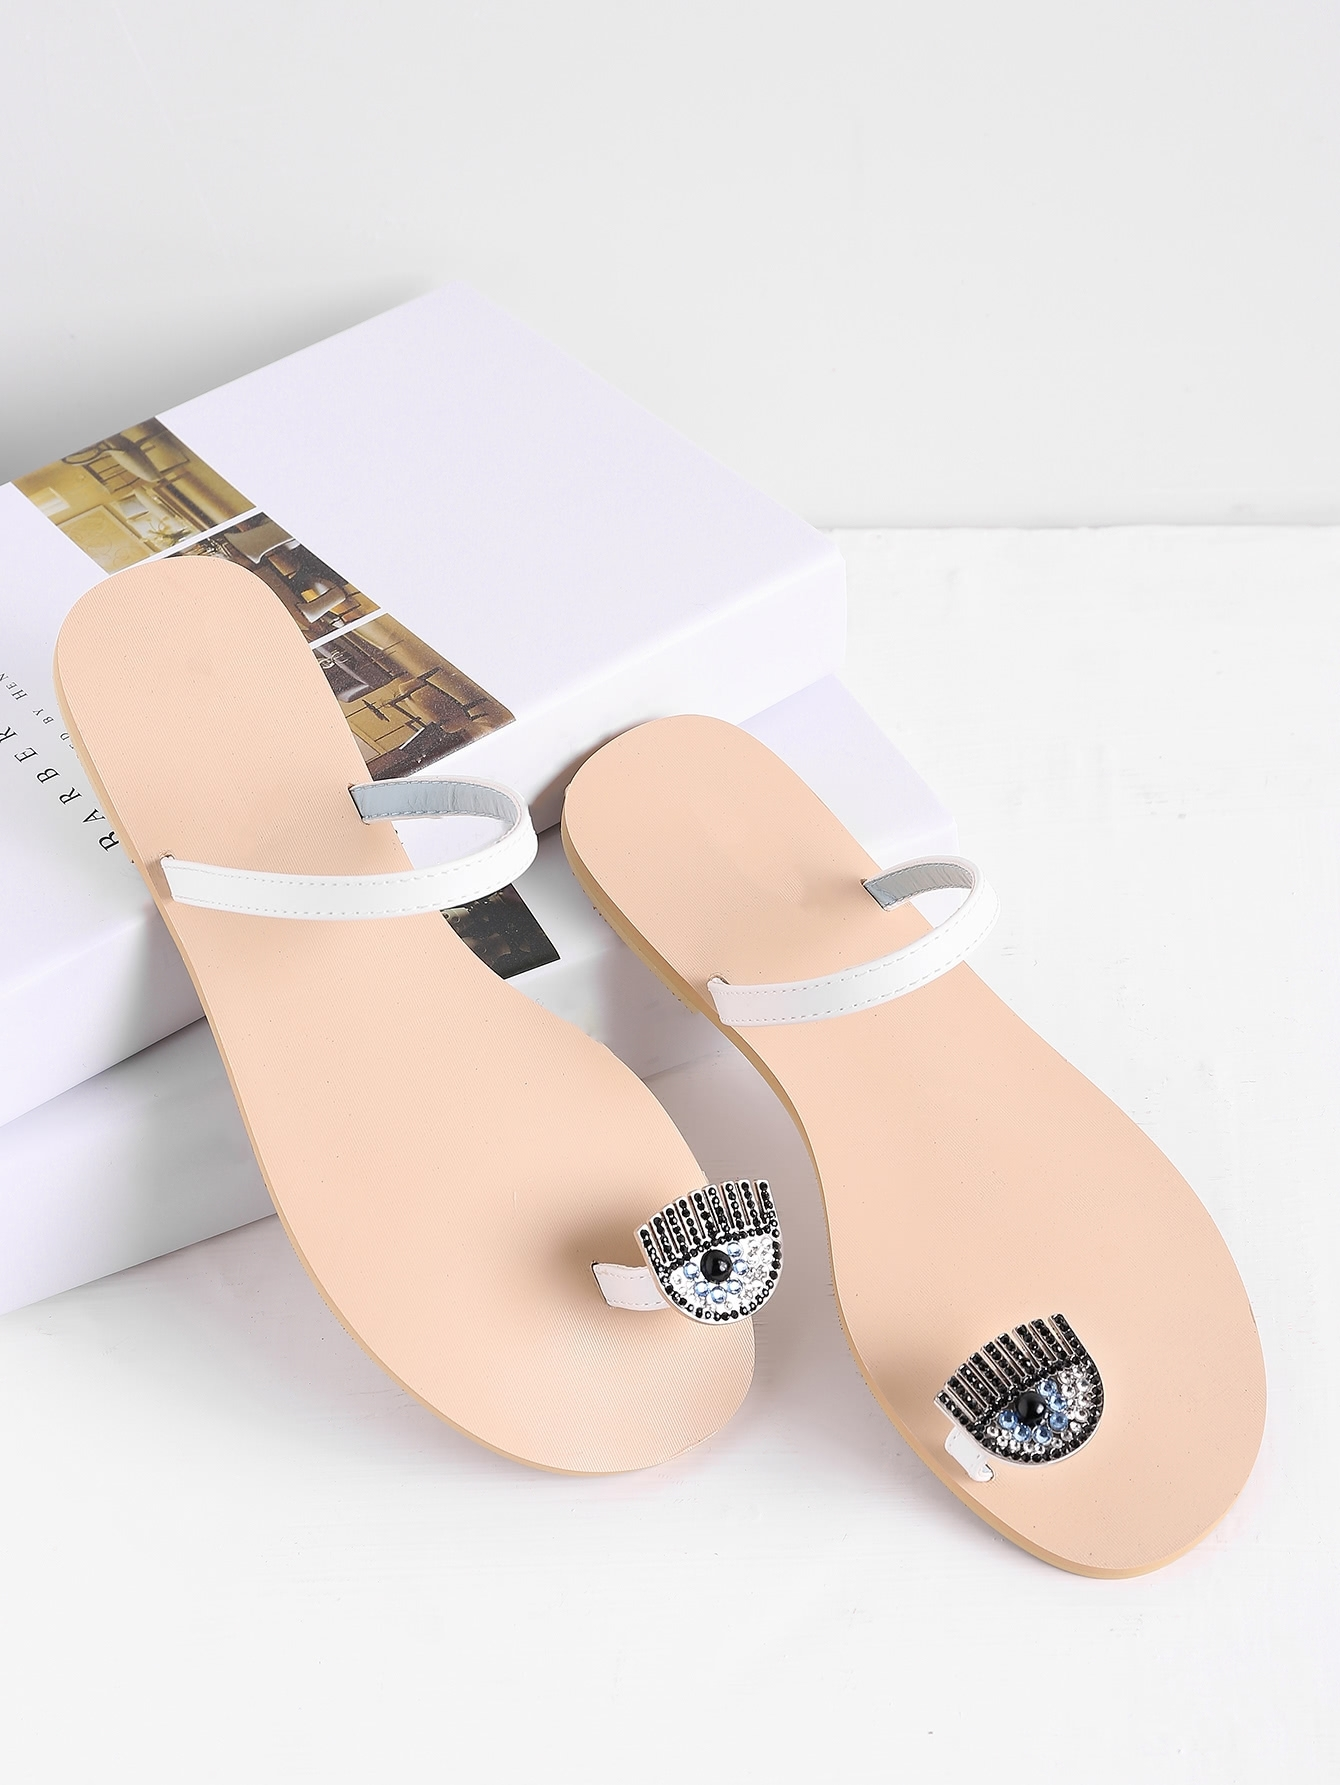 Rhinestone Embellished Toe Ring Flat Sandals  Shein(Sheinside) Regarding Newest Sandals Rhinestone Toe Rings (View 11 of 15)